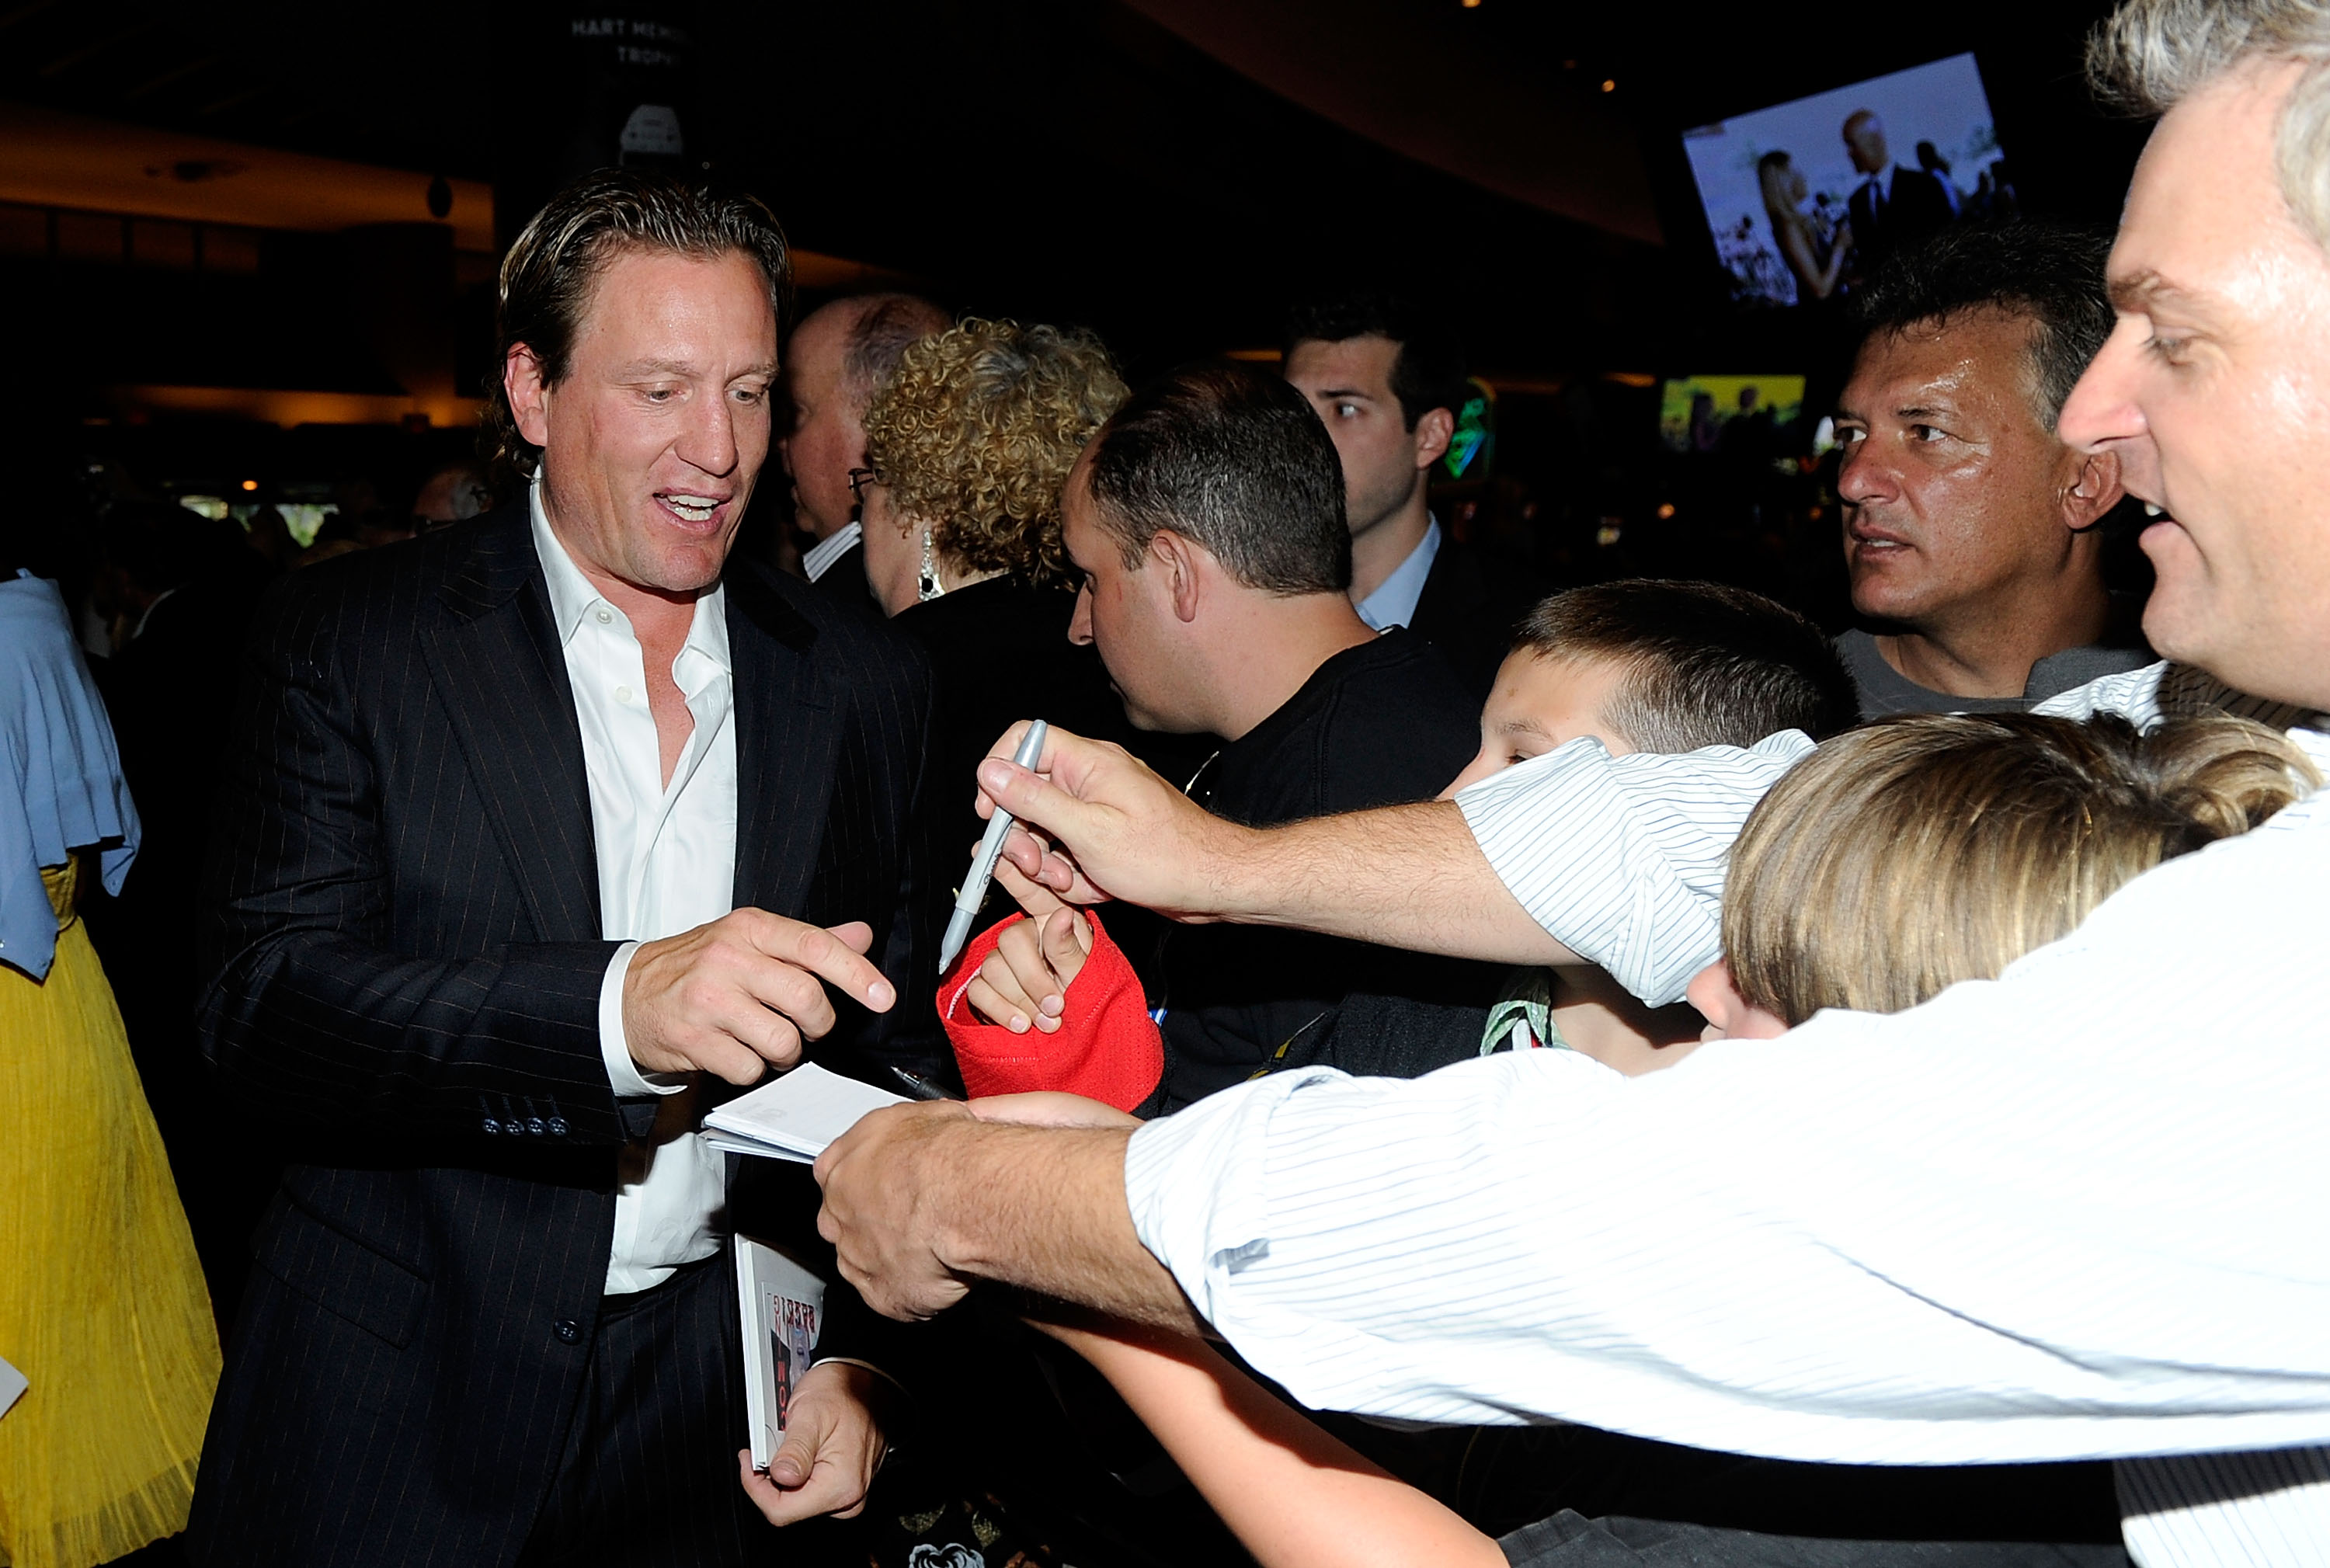 LAS VEGAS - JUNE 23:  Jeremy Roenick signs autographs for fans during the red carpet arrivals for the 2010 NHL Awards at the Palms Casino Resort on June 23, 2010 in Las Vegas, Nevada.  (Photo by Ethan Miller/Getty Images)